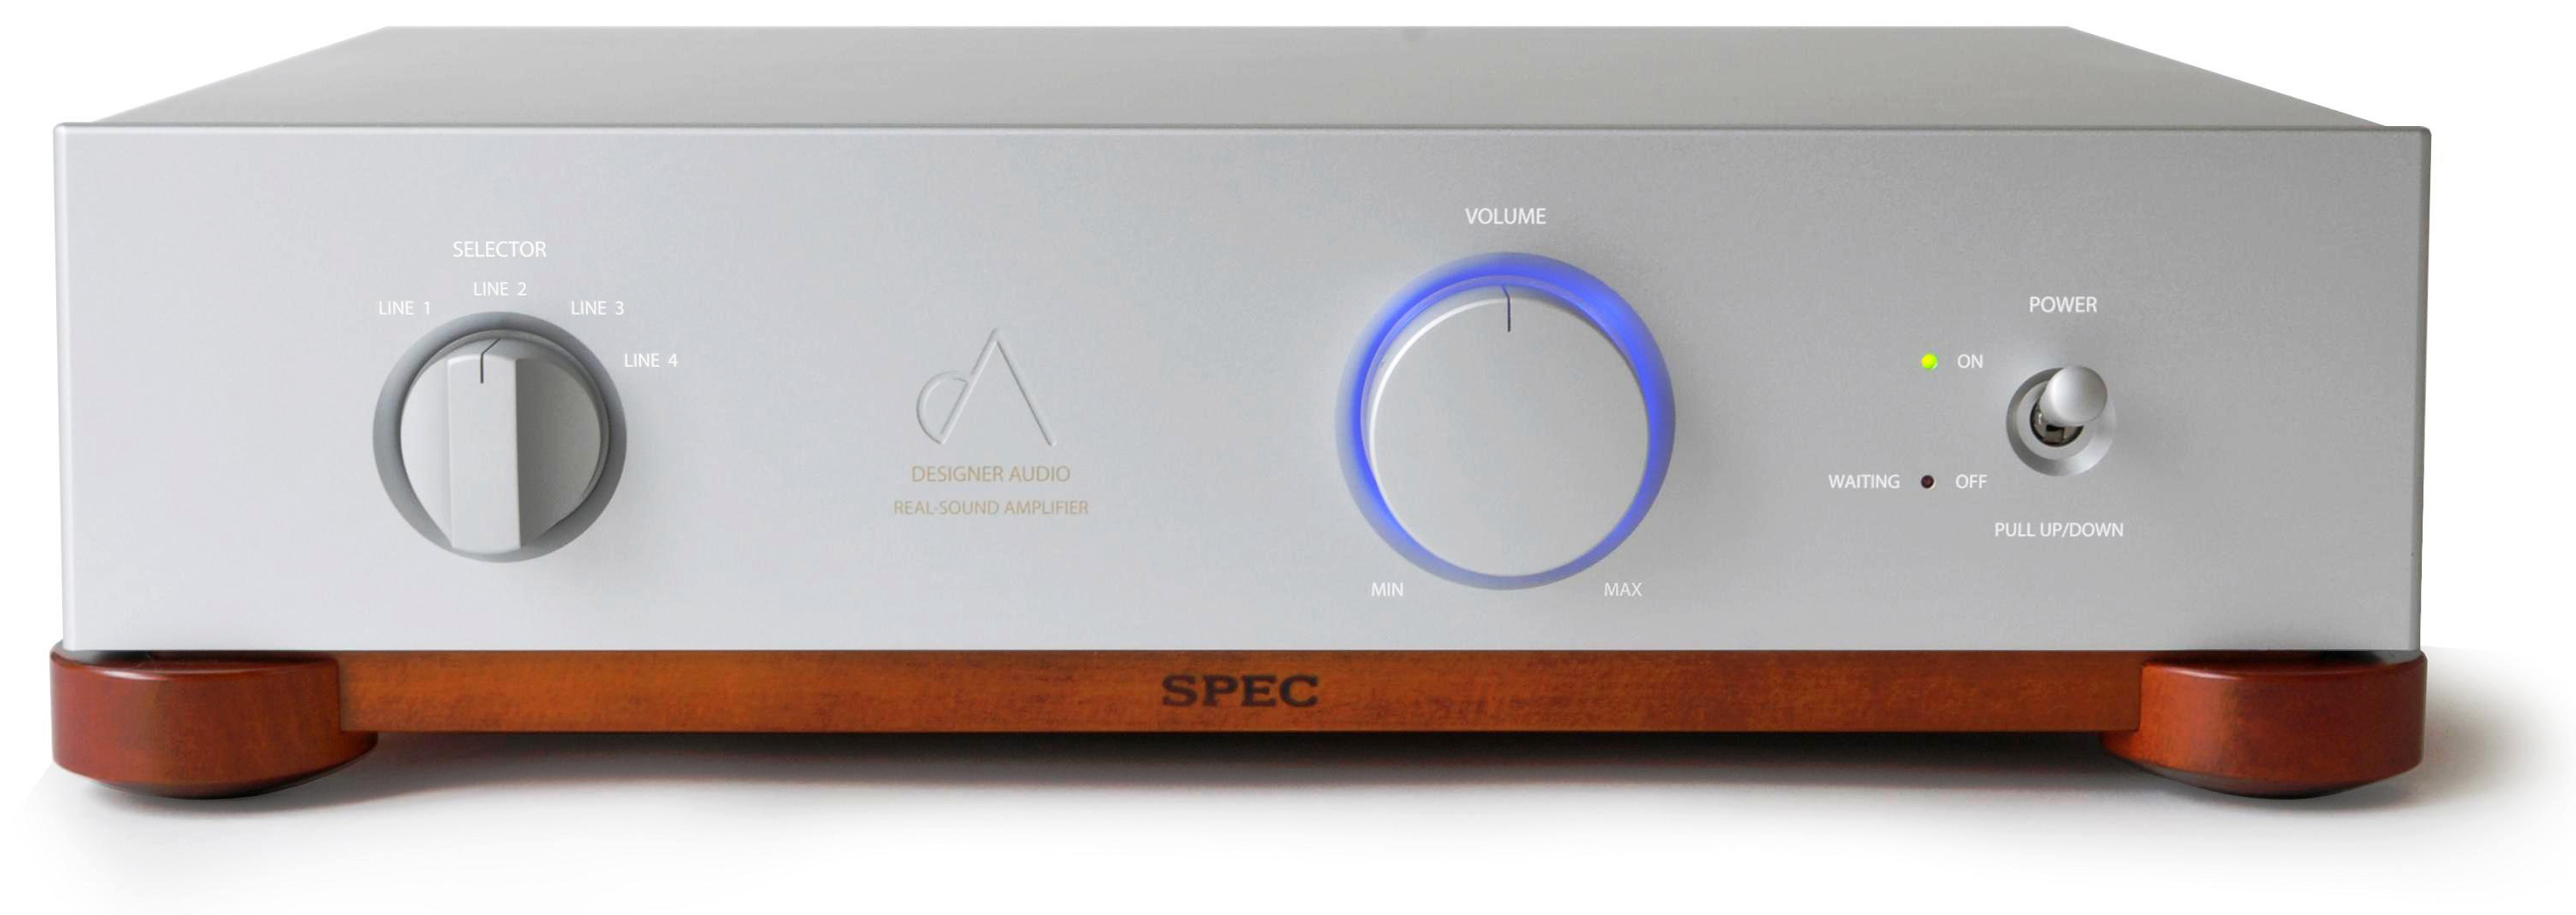 spec-amplificatore